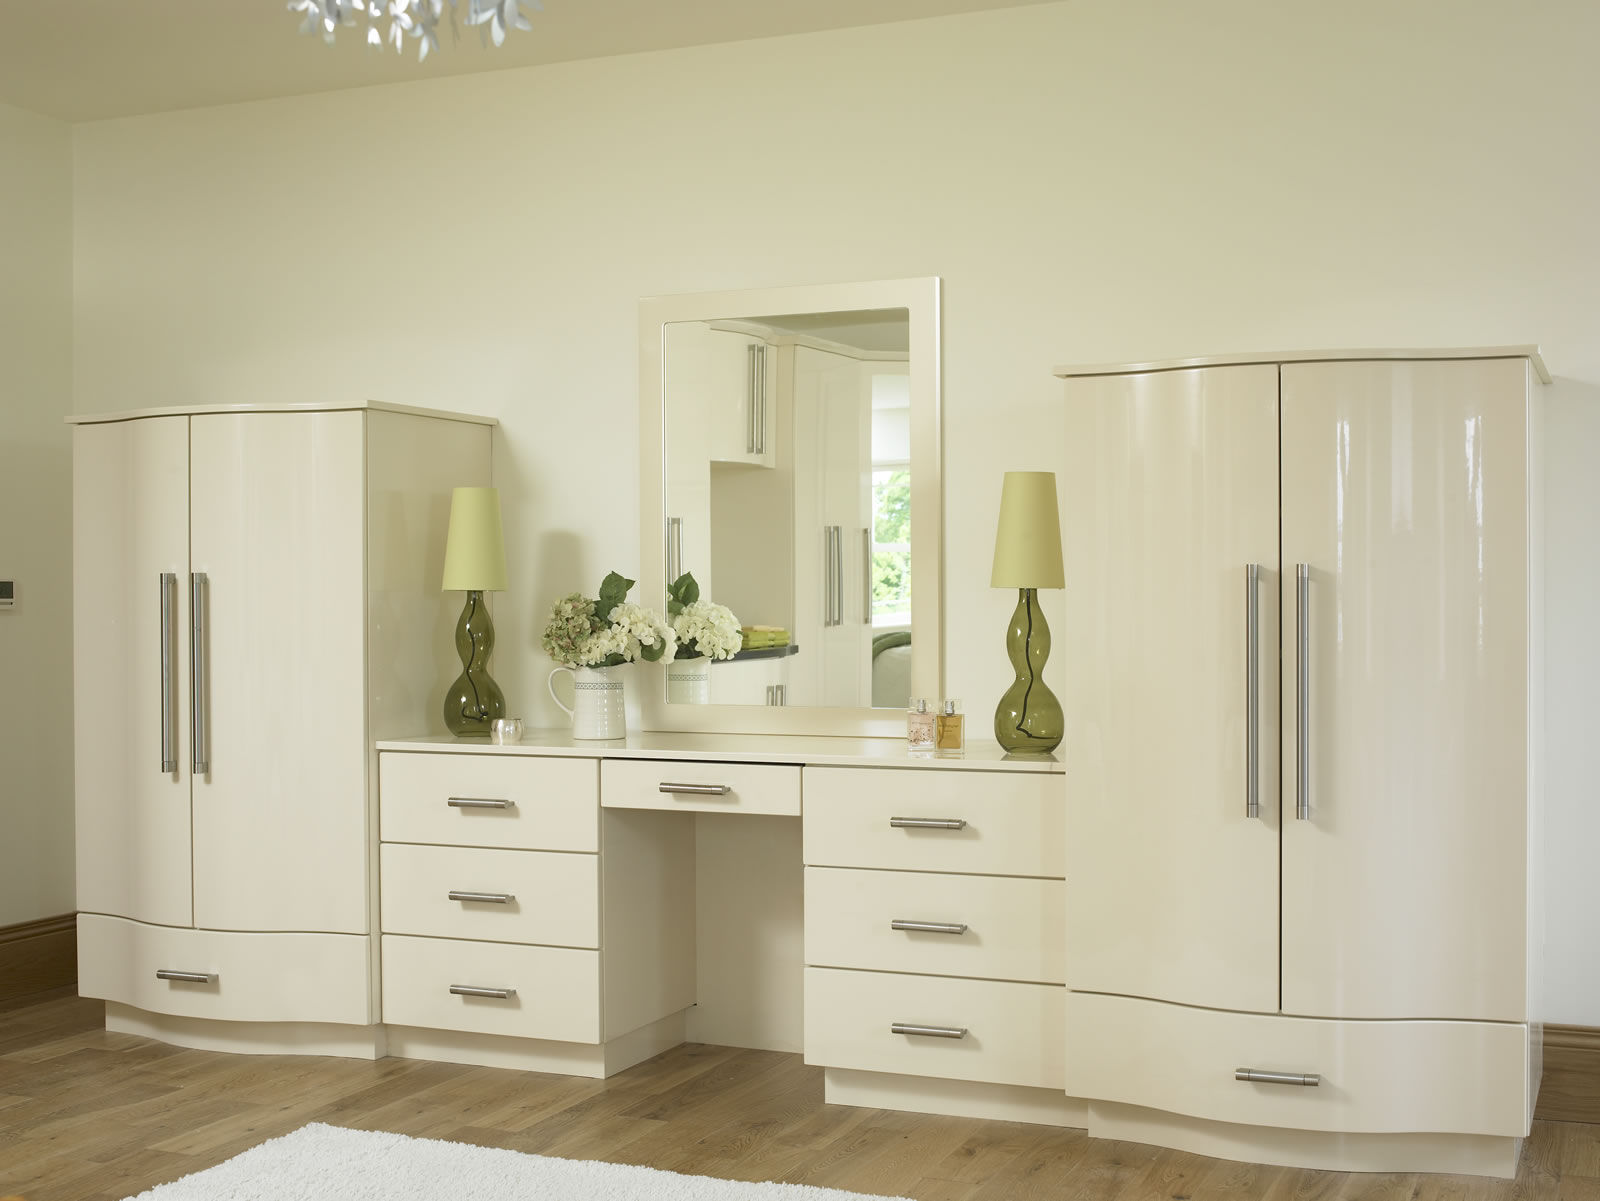 Bedrooms Galworx Custom Fitted Kitchens Furniture And